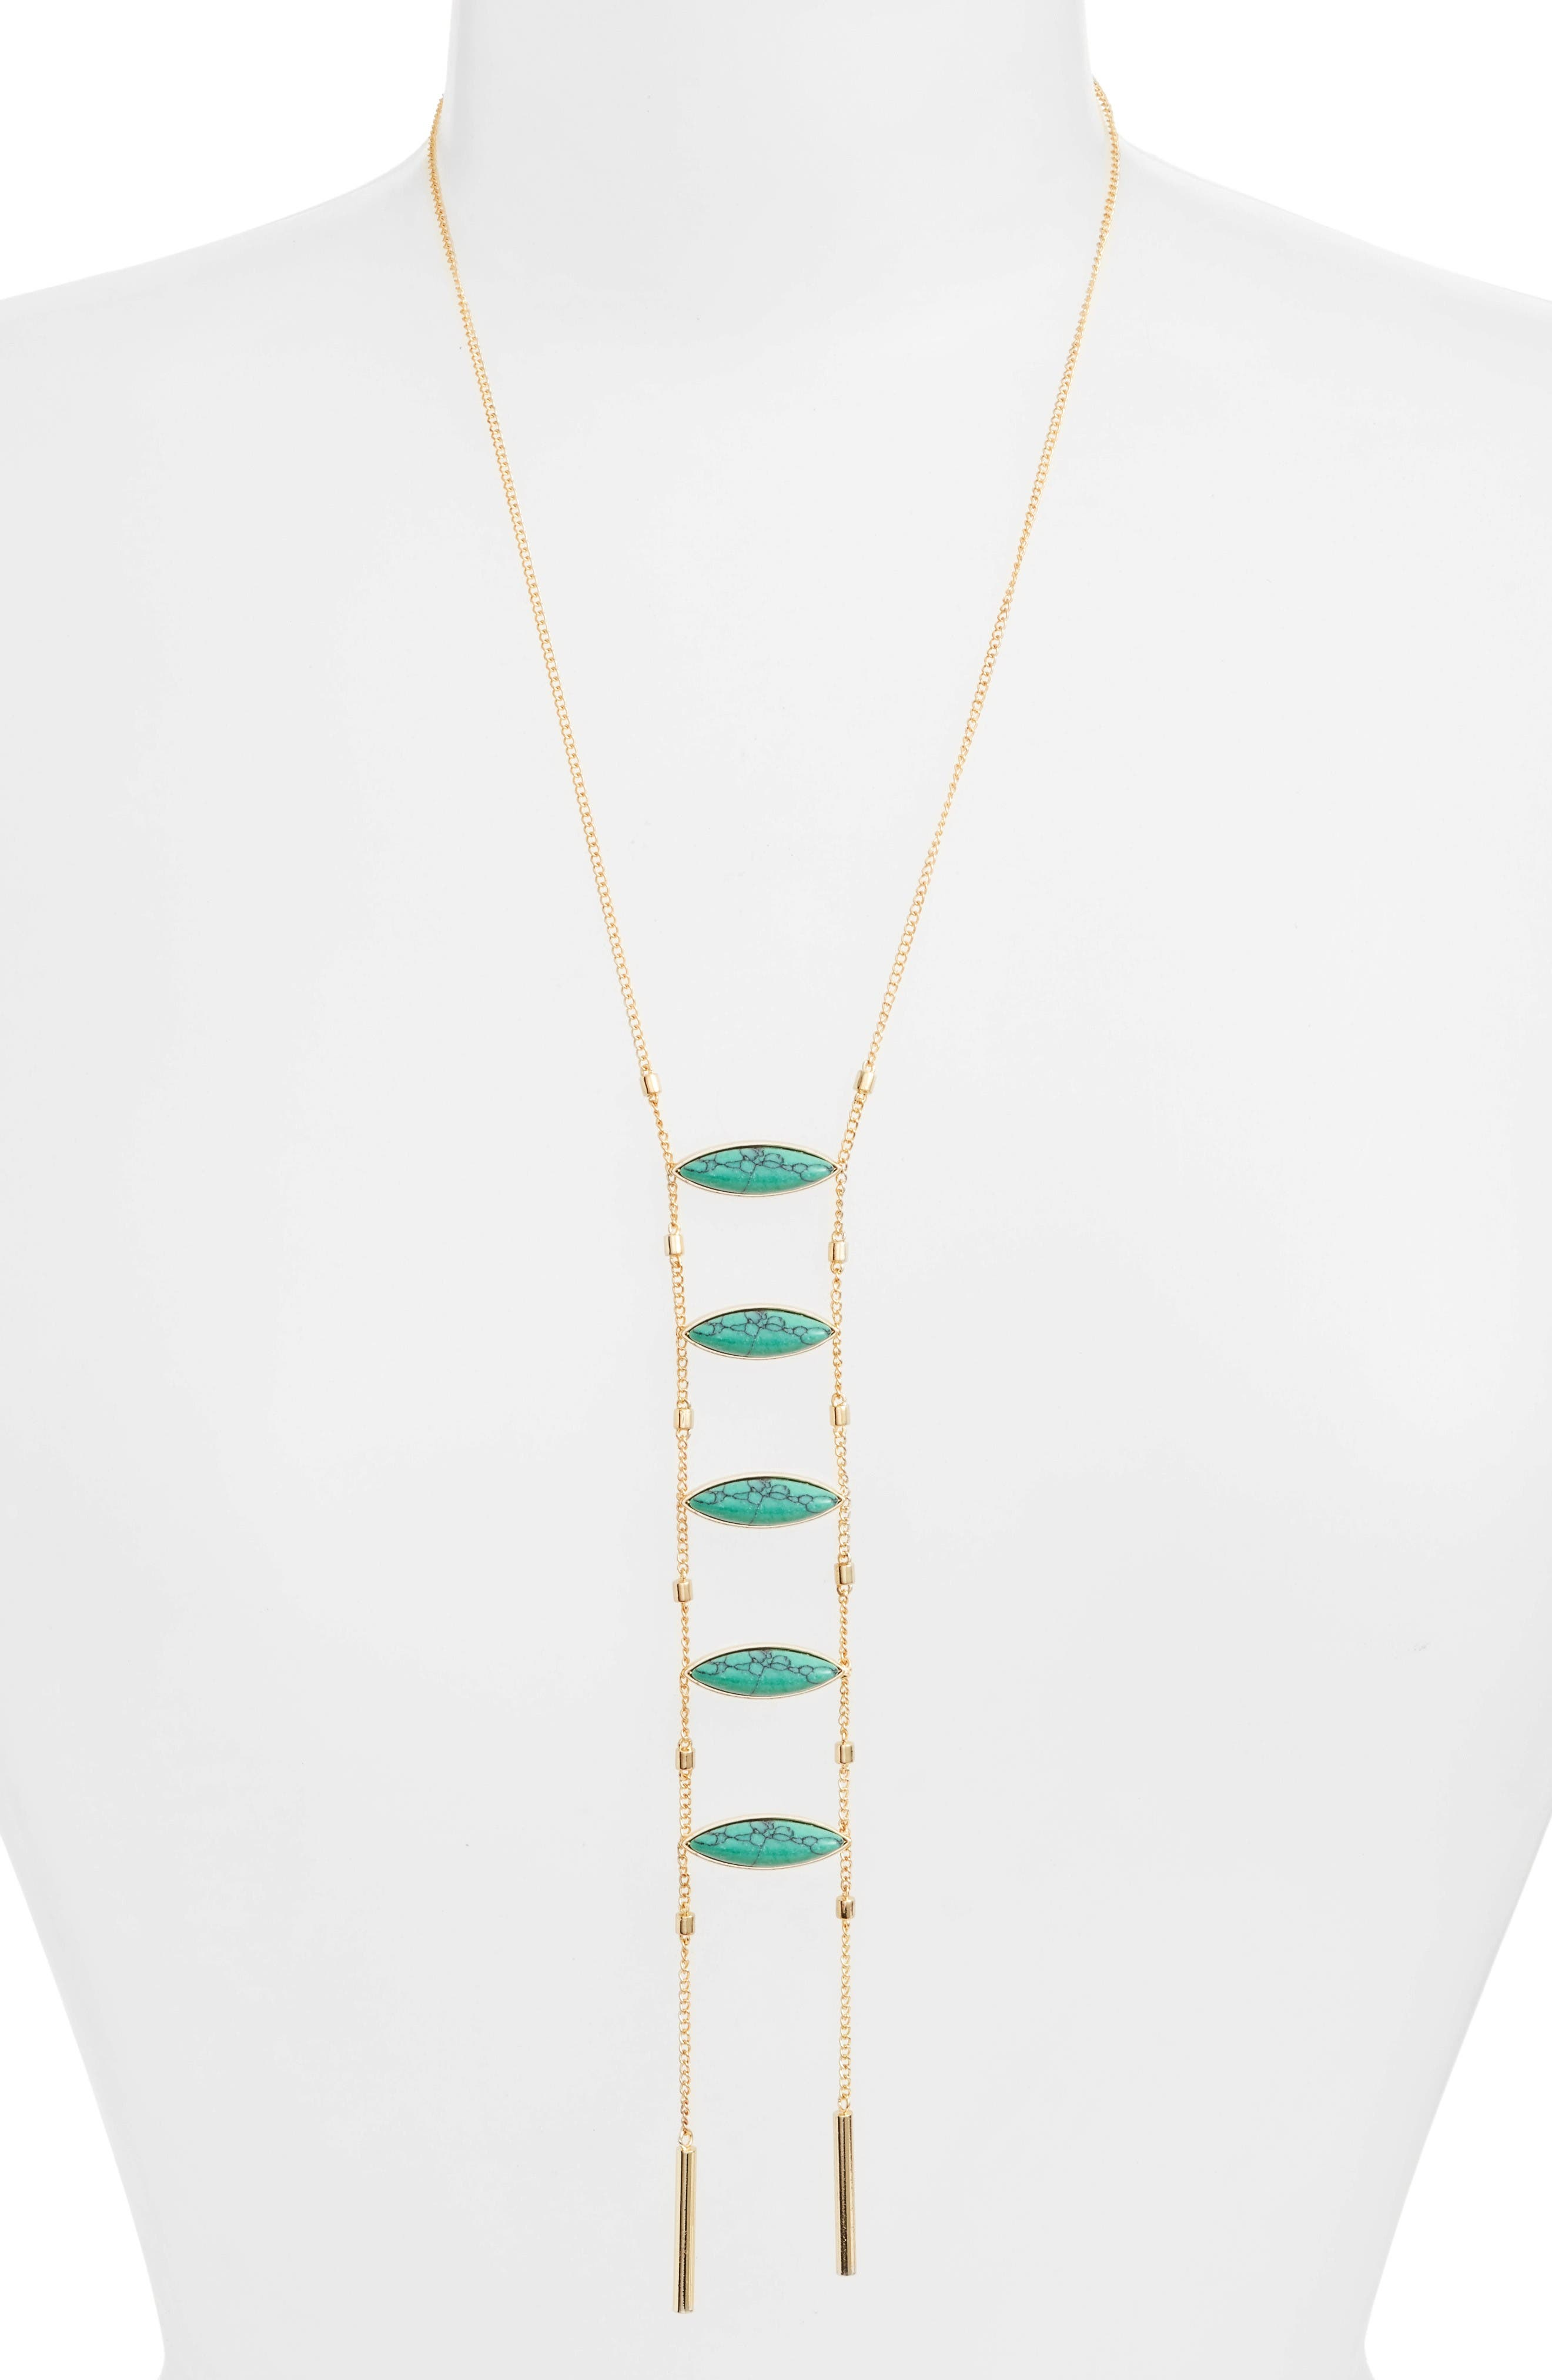 Camila Necklace,                         Main,                         color, Gold / Turquoise